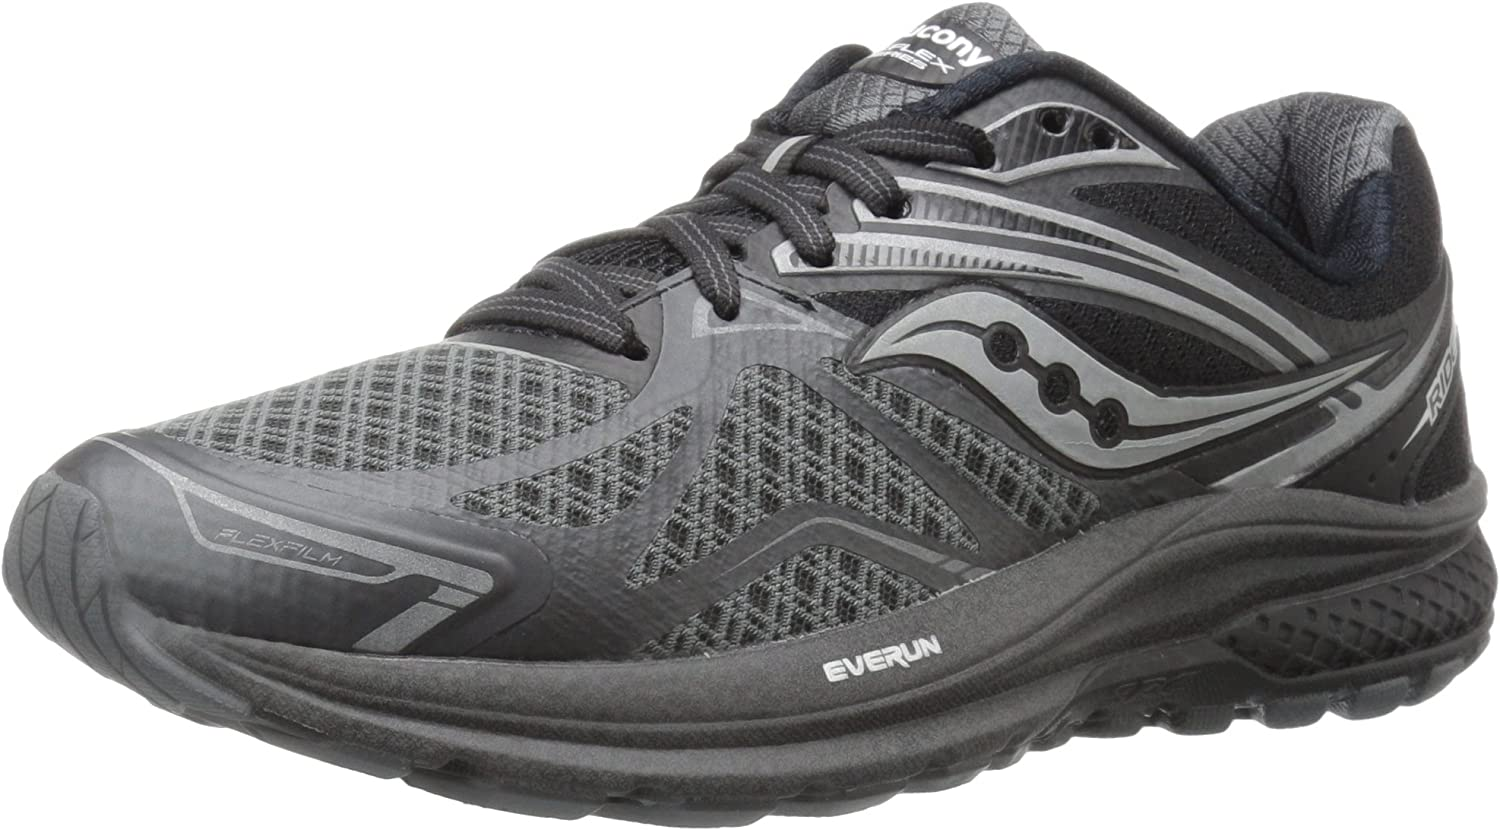 Saucony Womens Ride 9 Reflex-w Running shoes